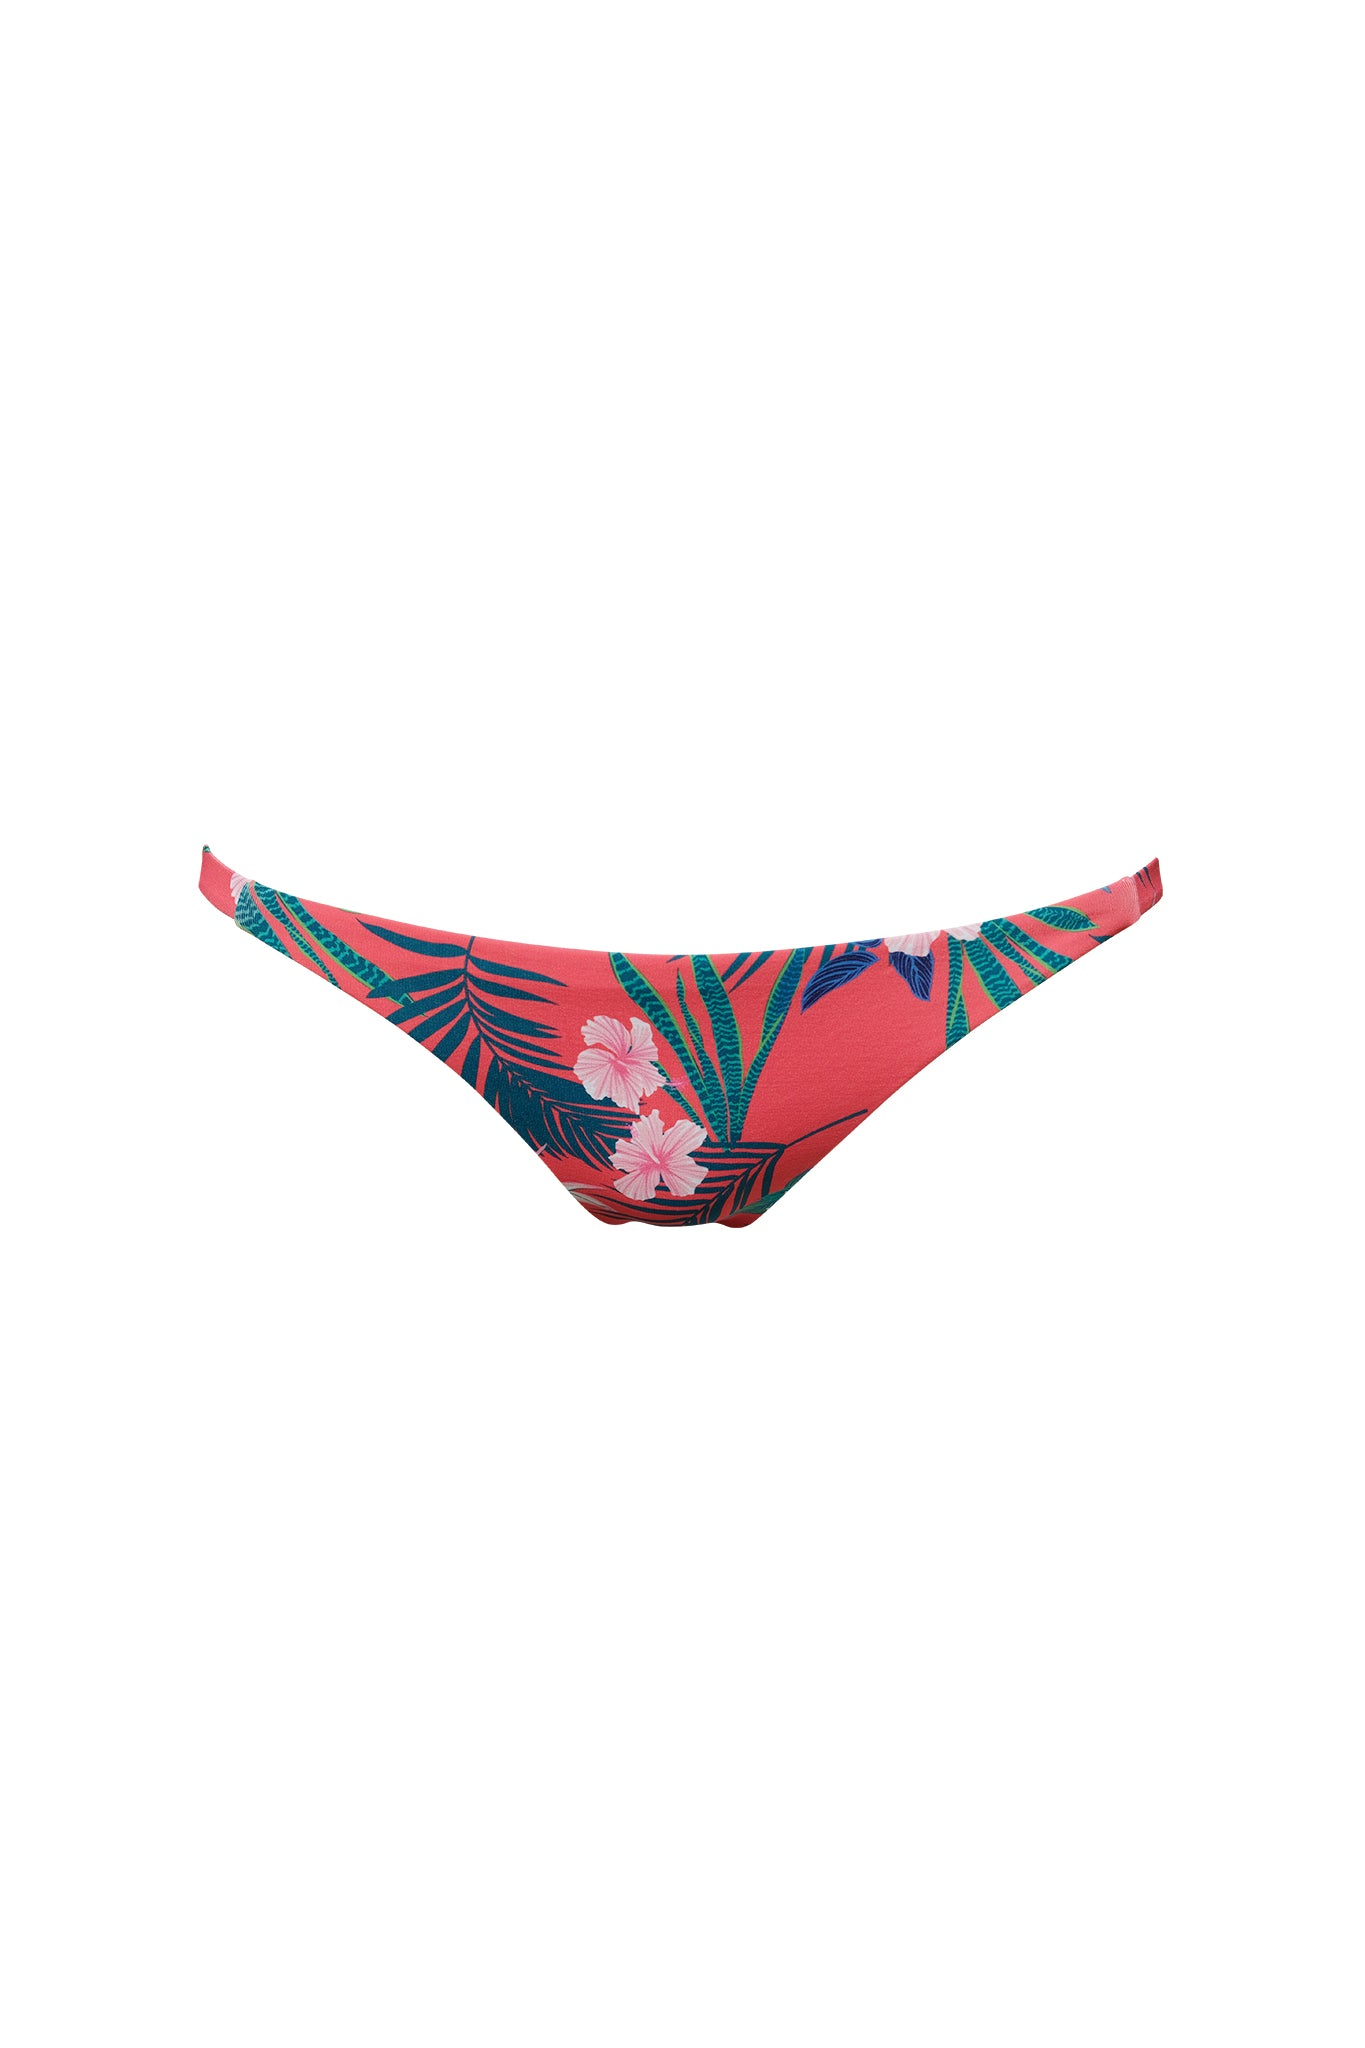 e4f135663f2b1 CAPE TOWN - swimwear bikini bottom - Palm Cruise – Mint Escape